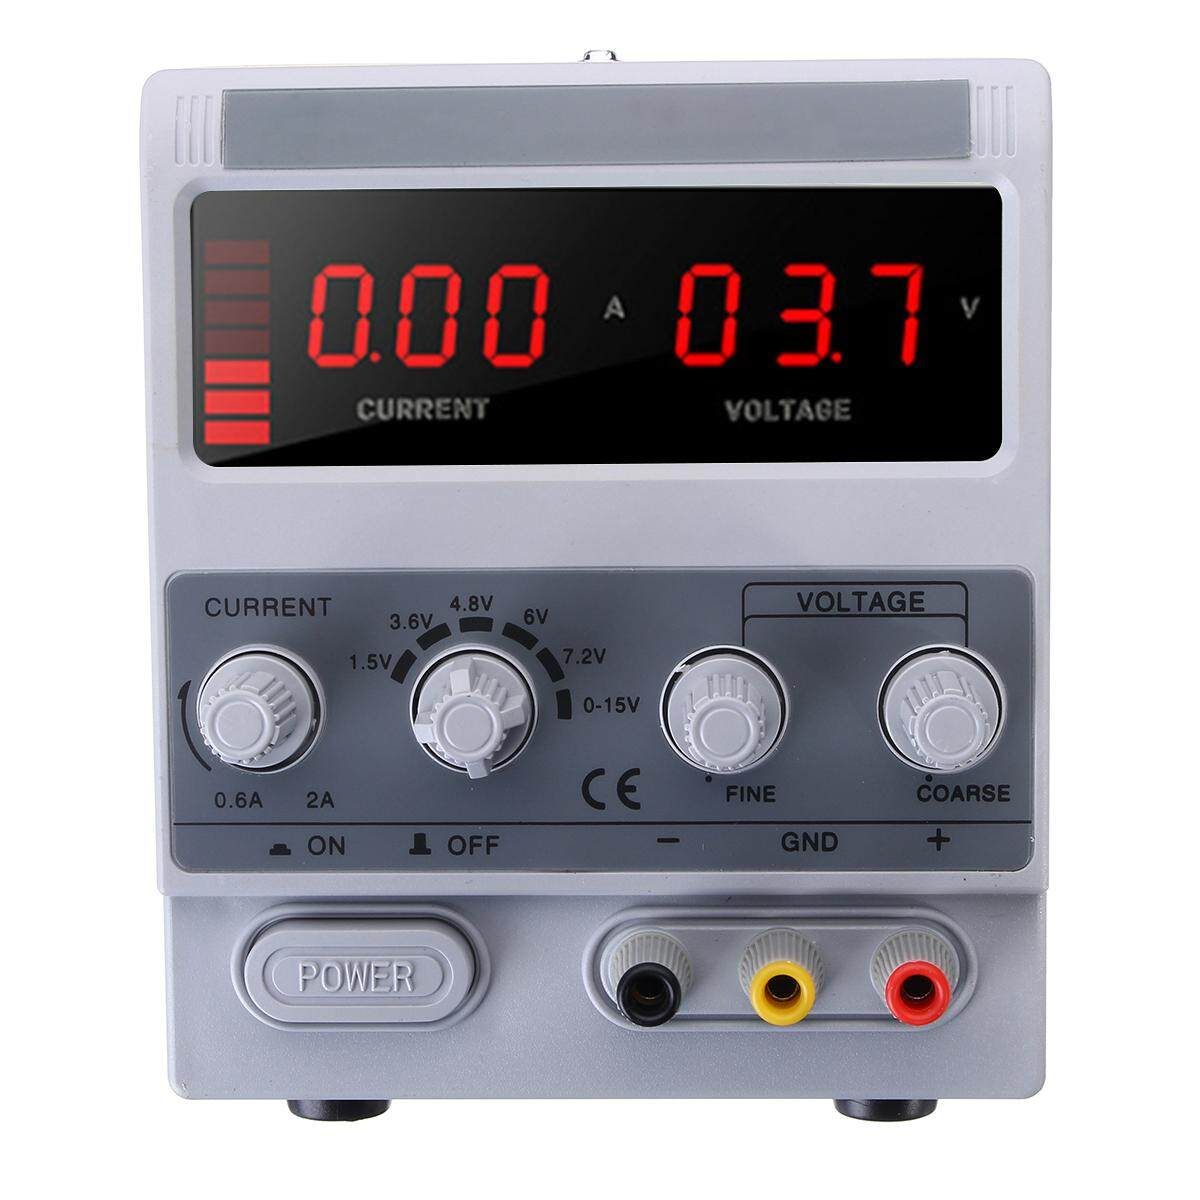 1502d+ Dc Power Supply Led Display Mobile Phone Repair Power Test Regulated By Glimmer.